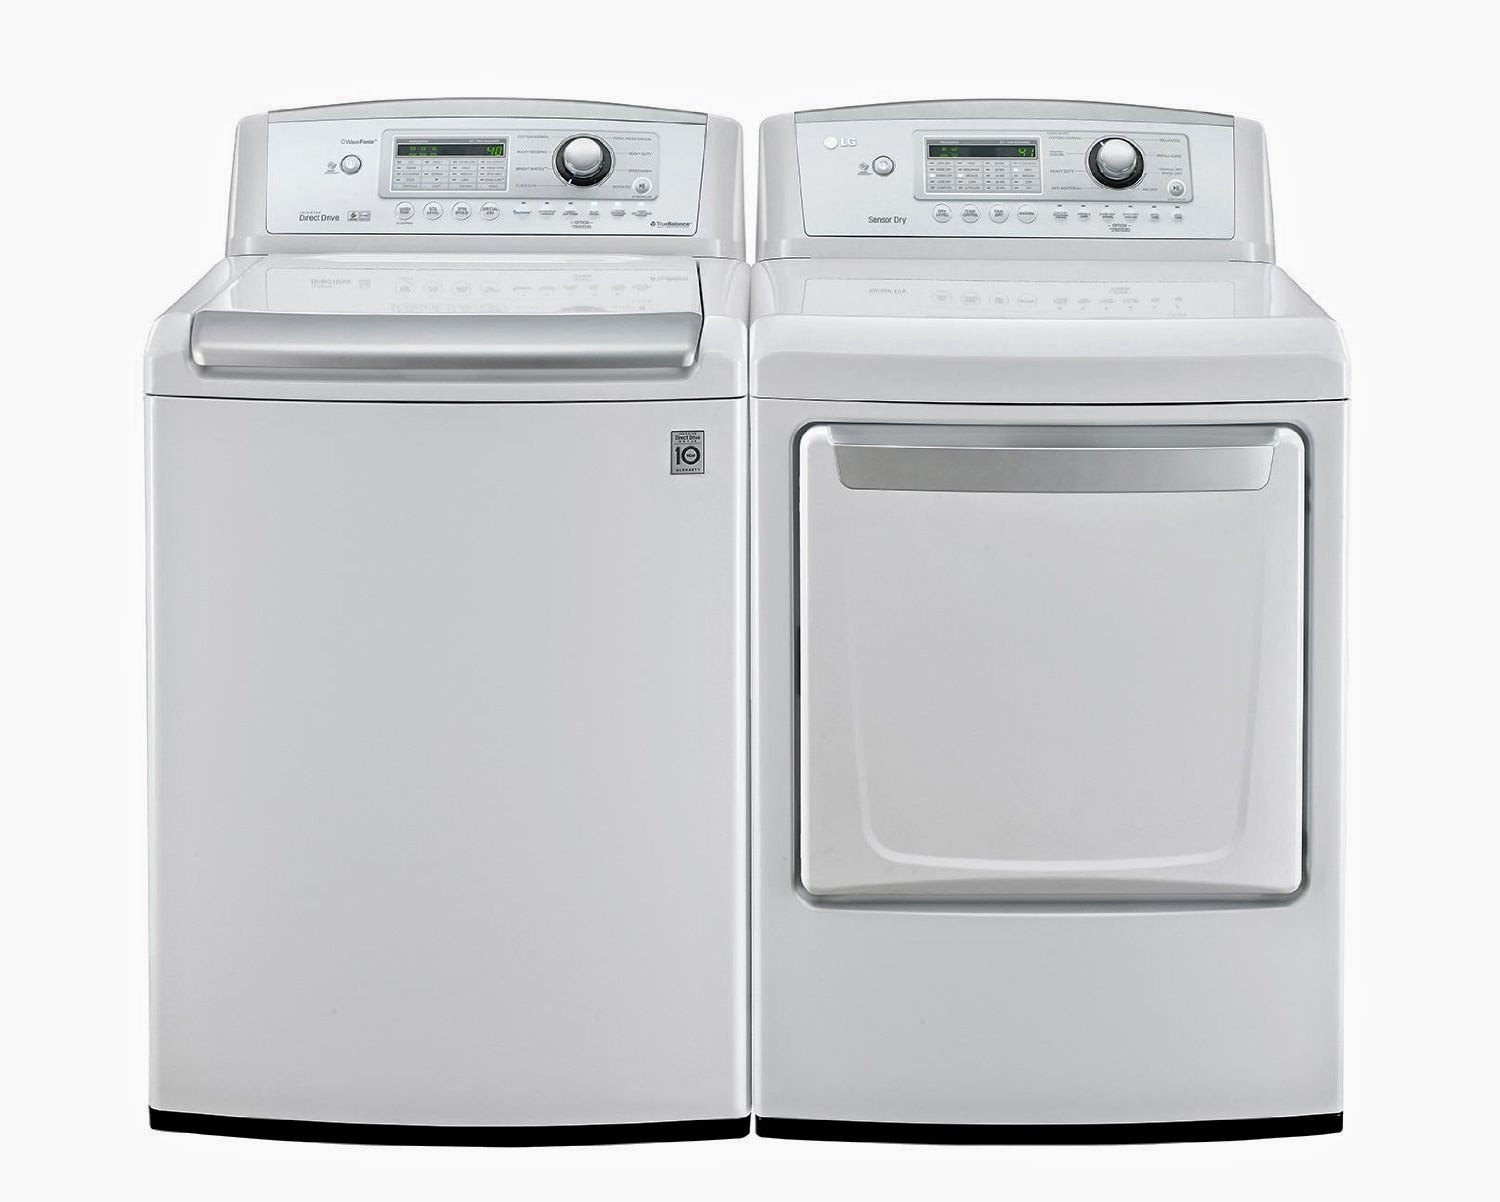 Lg Washer And Dryer Reviews Lg Top Load Washer And Dryer